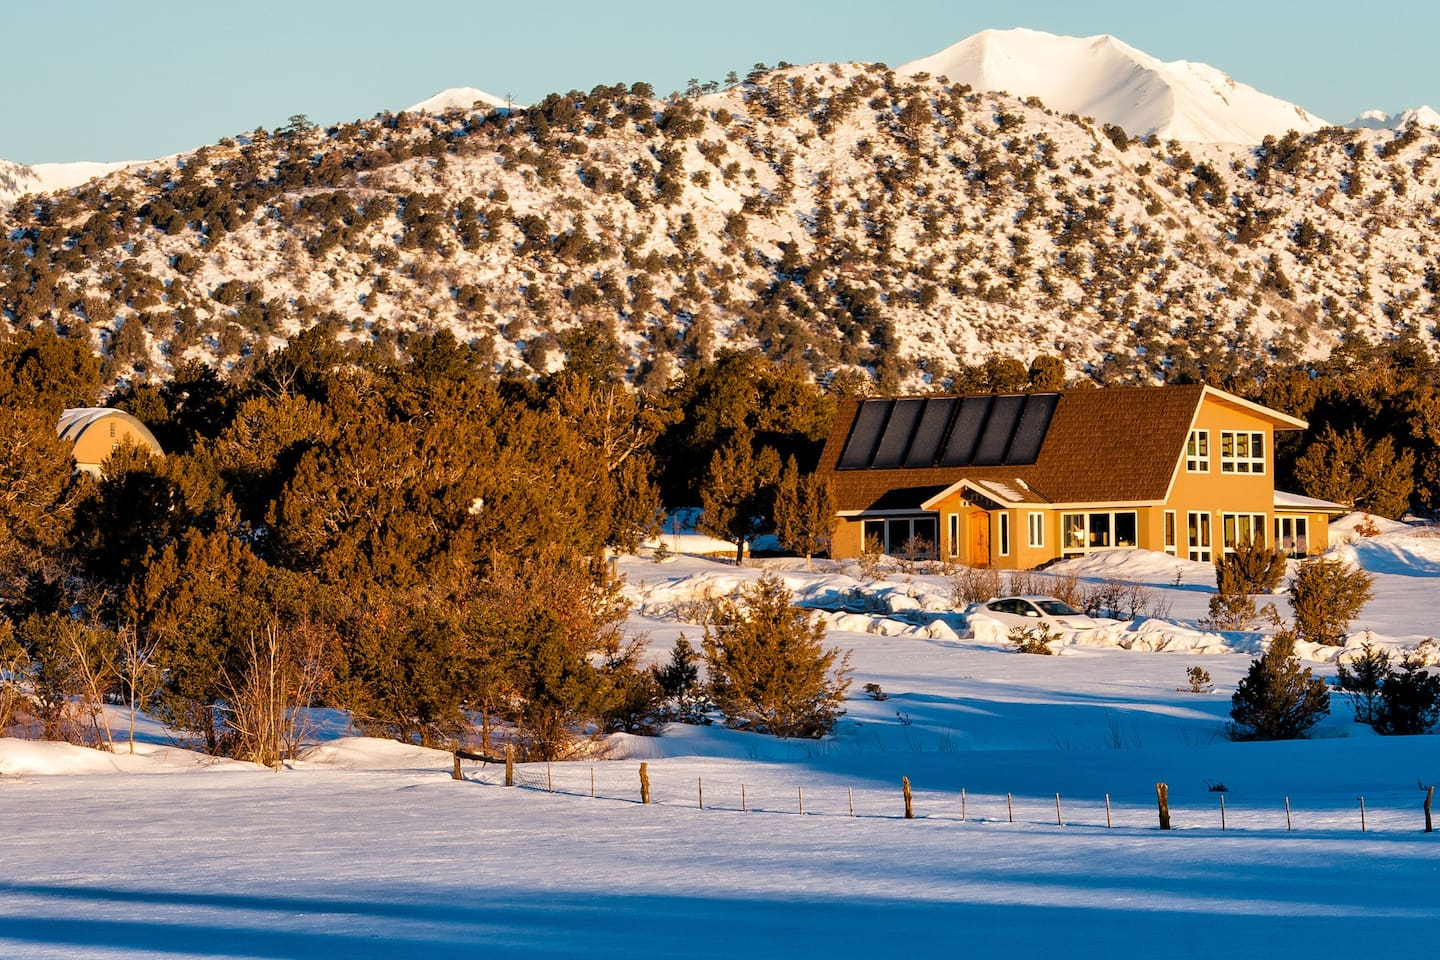 We welcome you to stay with us in our modern solar home nestled in the Colorado countryside just 9 miles from downtown Durango towards the La Plata County airport